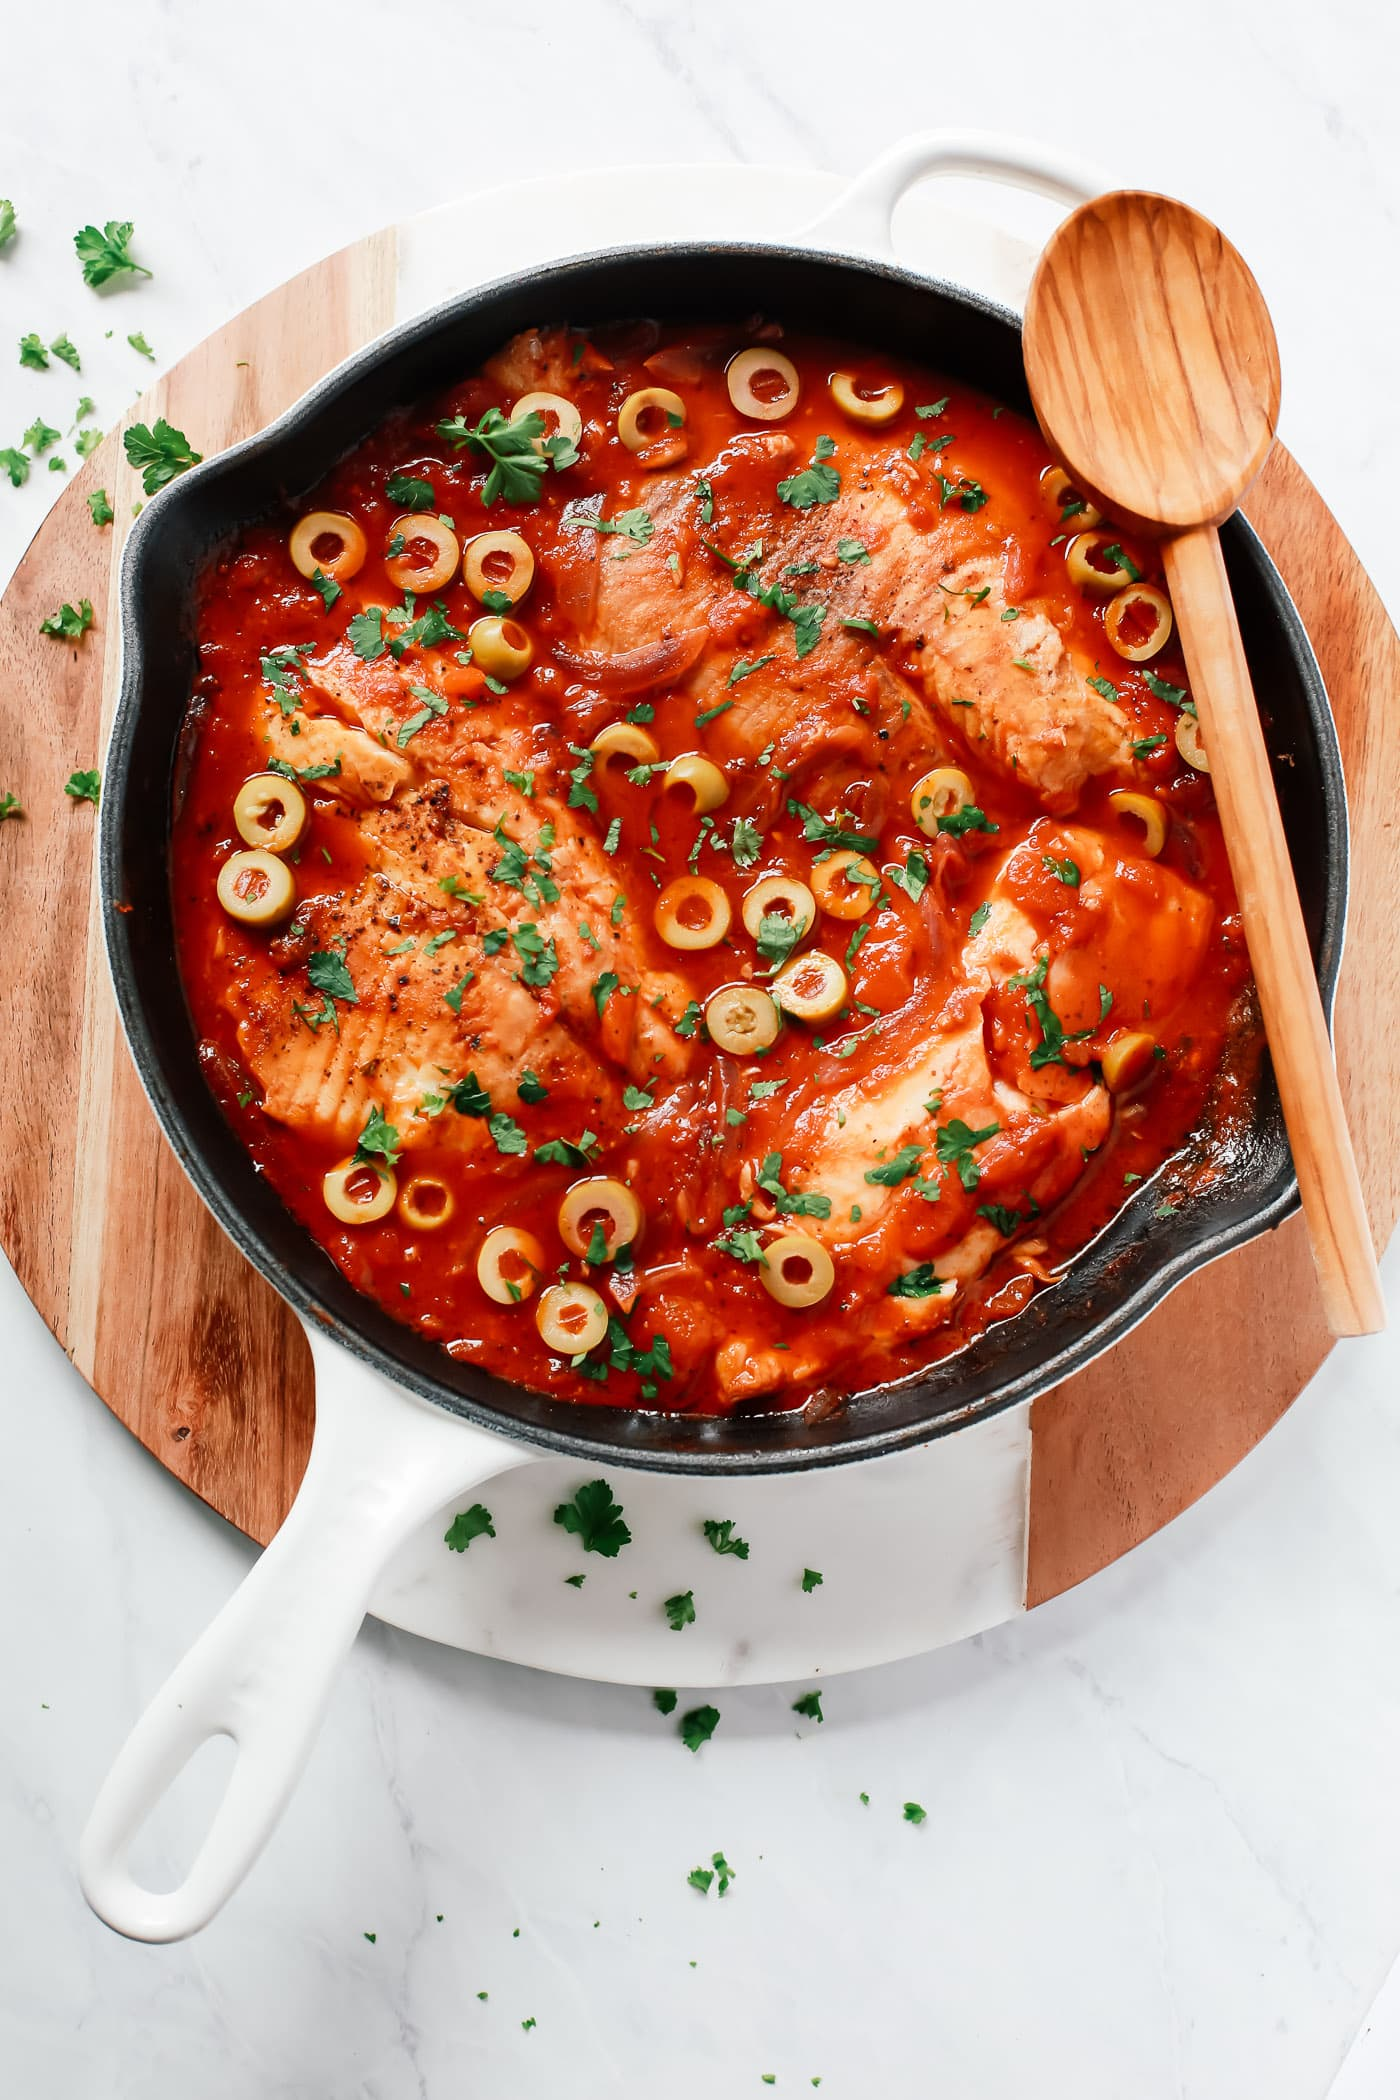 Healthy Cast Iron Skillet - 3-Ingredient Tilapia Skillet Recipe.